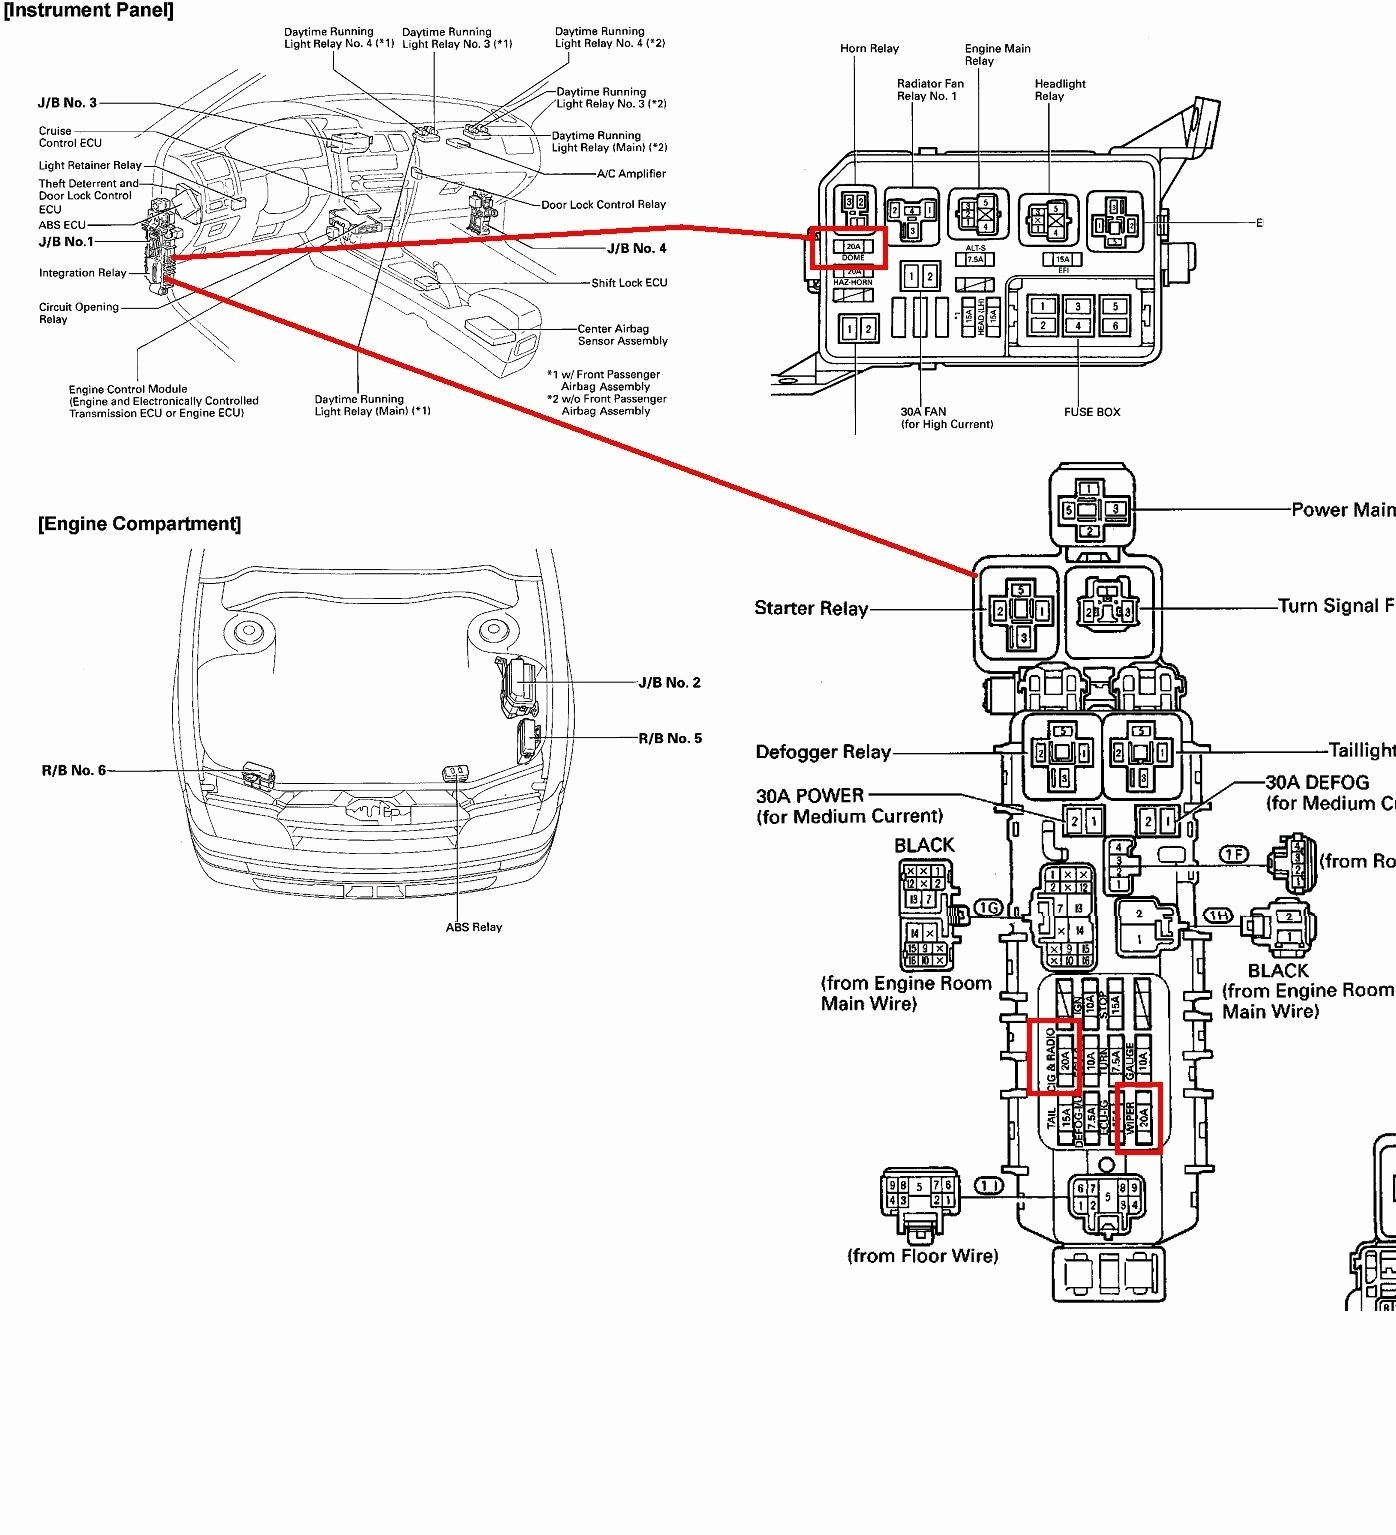 Electrical Wiring Diagram 2006 Toyota Matrix Wiring Diagram Verison Verison Lastanzadeltempo It